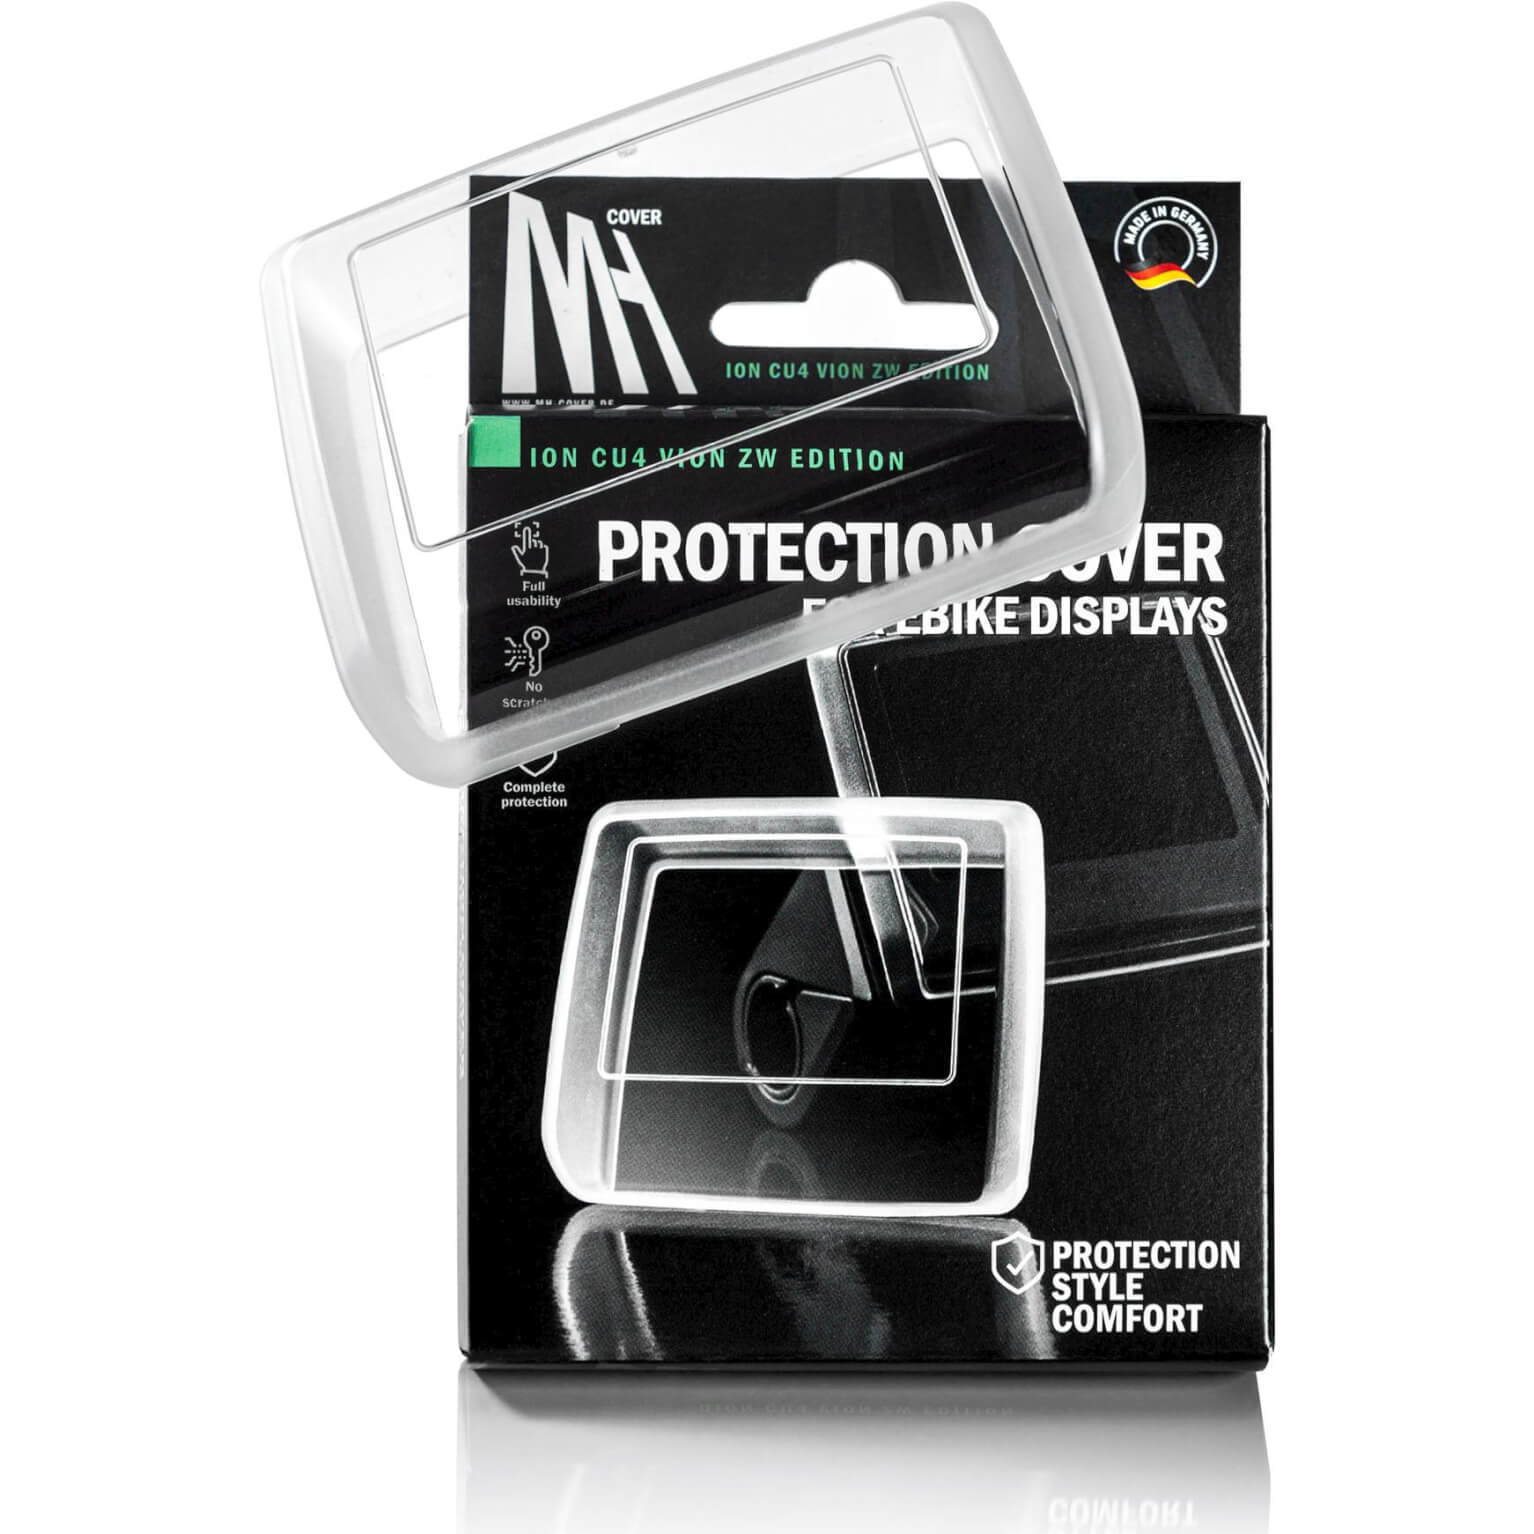 MH protection cover Ion CU4